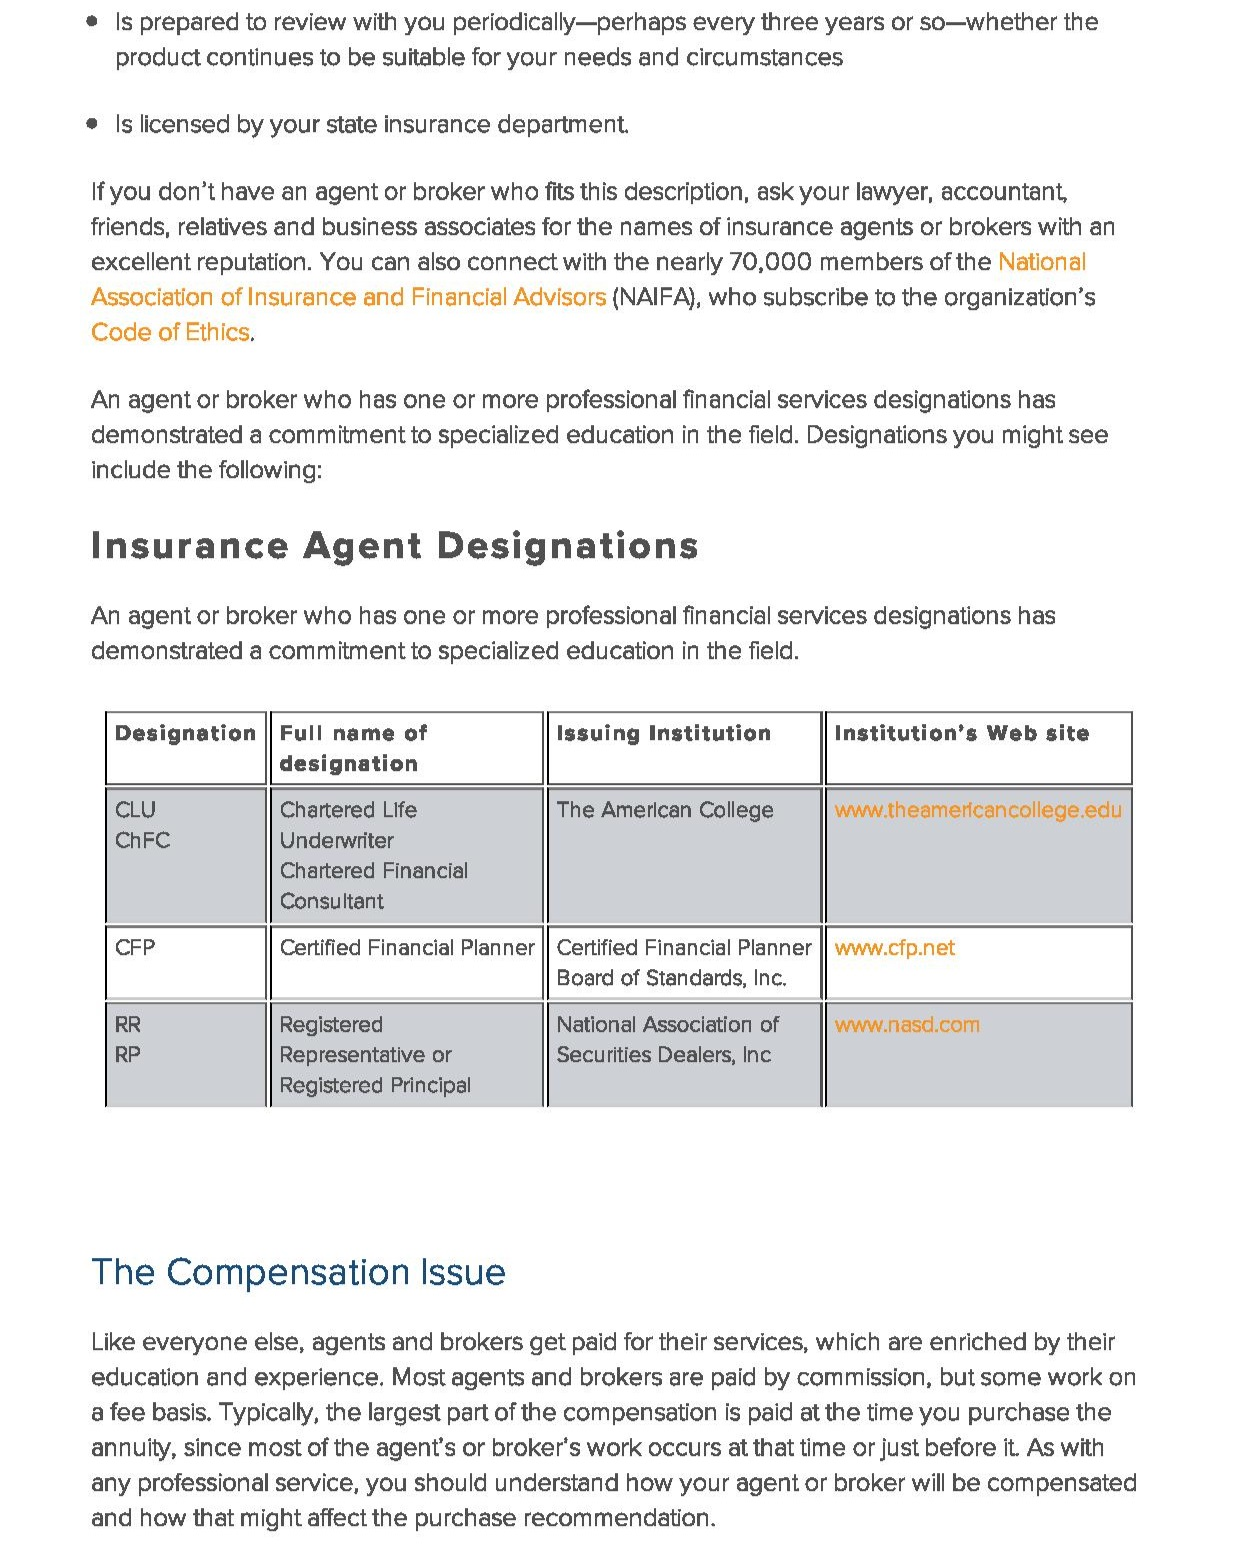 insurance article page 2.jpg